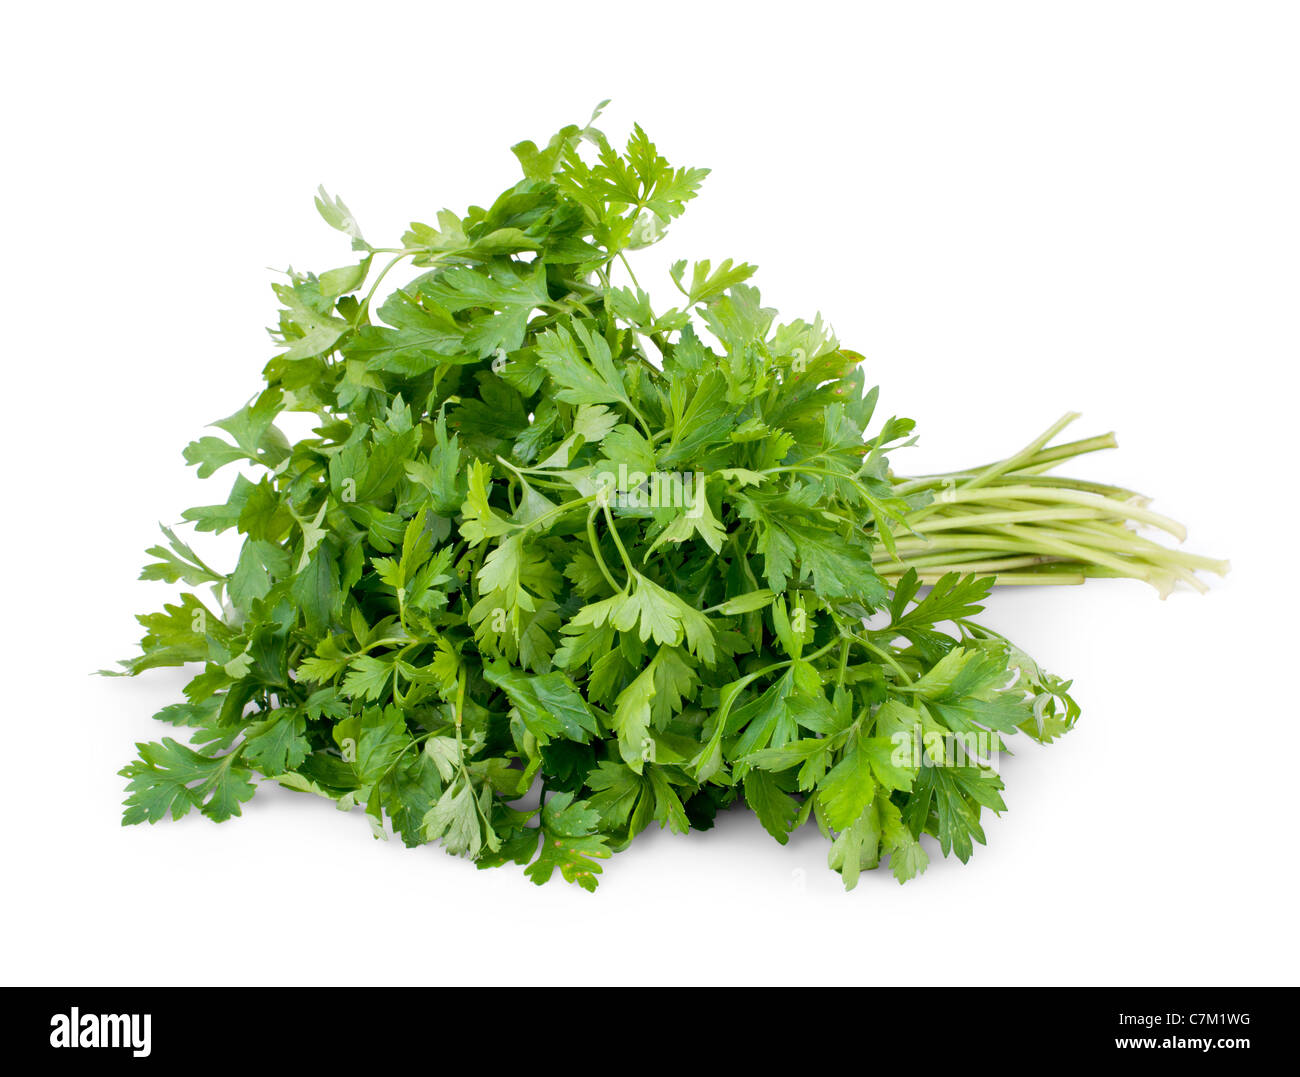 Bunch of parsley isolated on white background - Stock Image